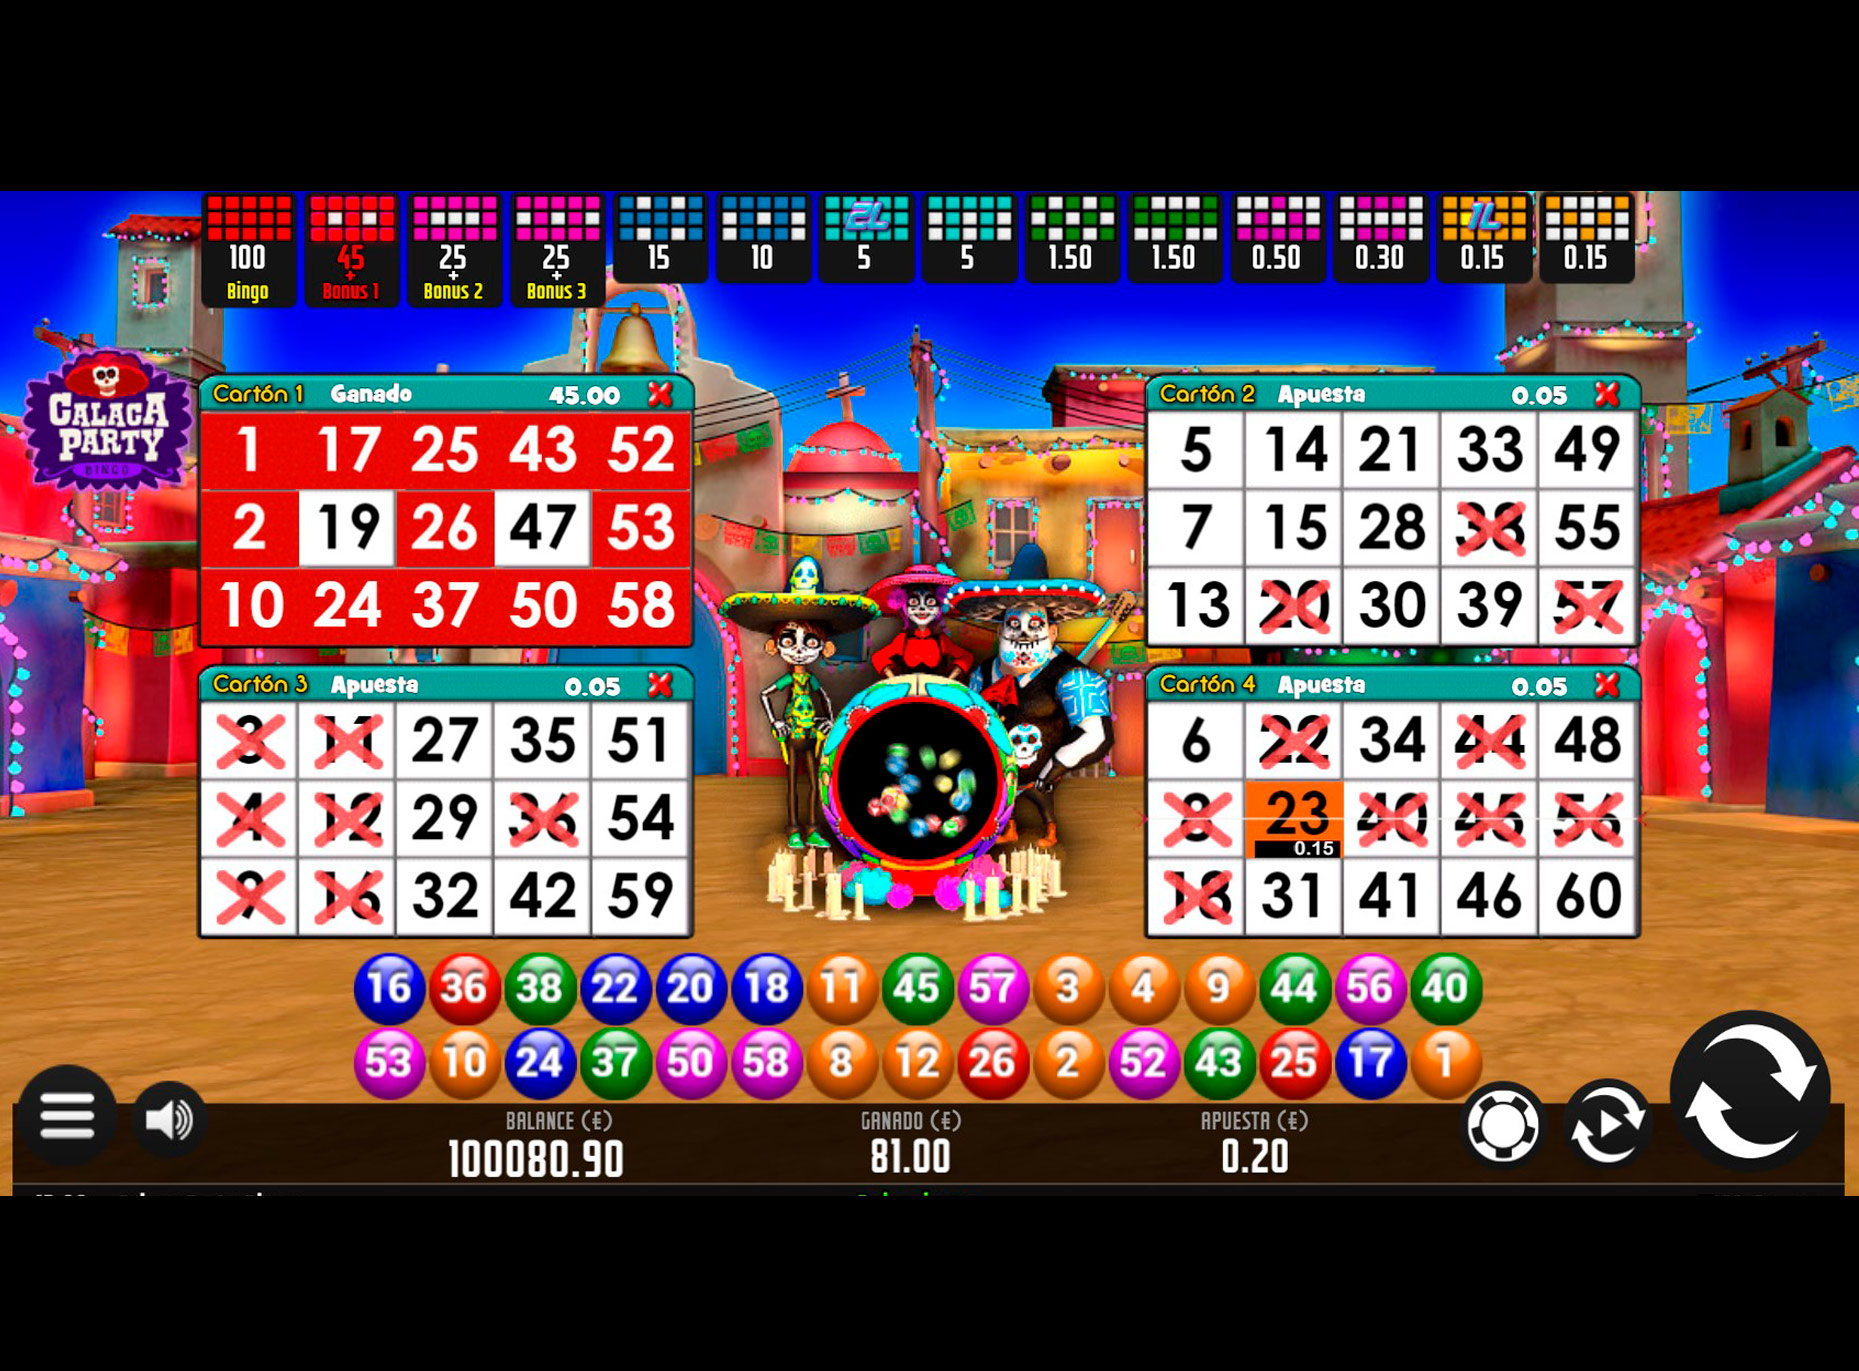 Slot Bingo Calaca Party